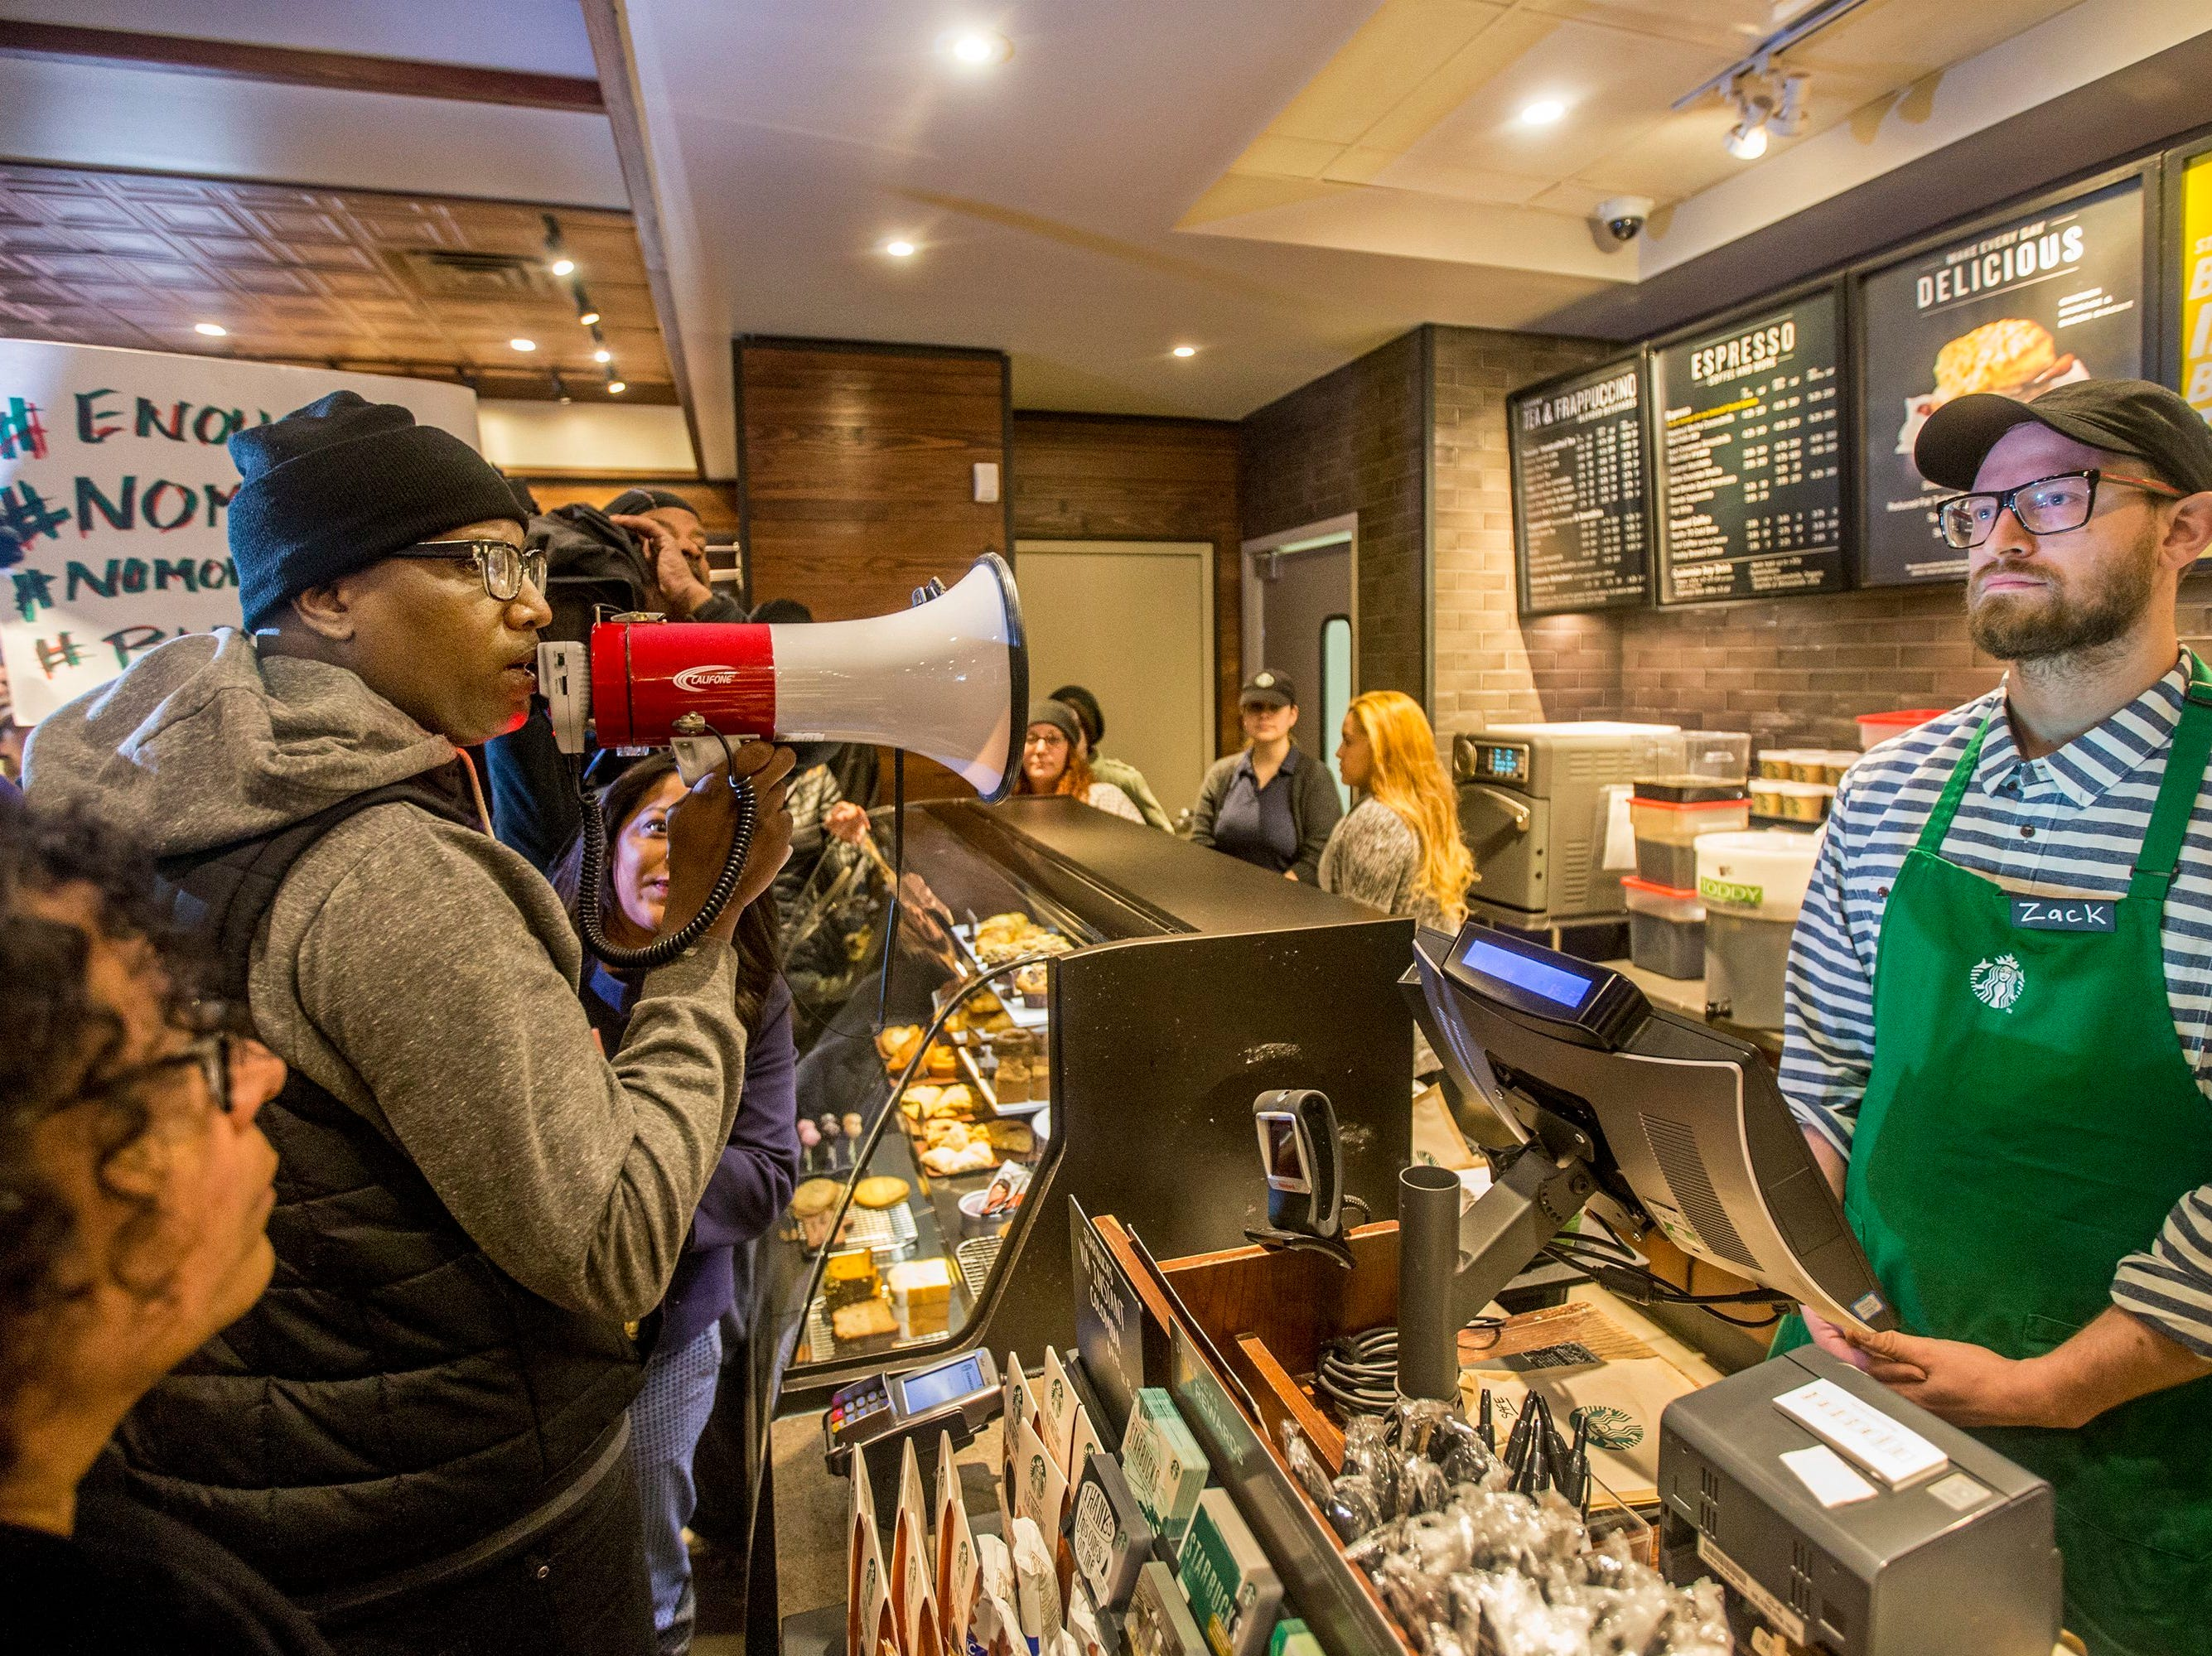 April 15, 2018: Local Black Lives Matter activist Asa Khalif, left, stands inside a Starbucks, demanding the firing of the manager who called police resulting in the arrest of two black men on April 12. The arrests were captured on video that quickly gained traction on social media.